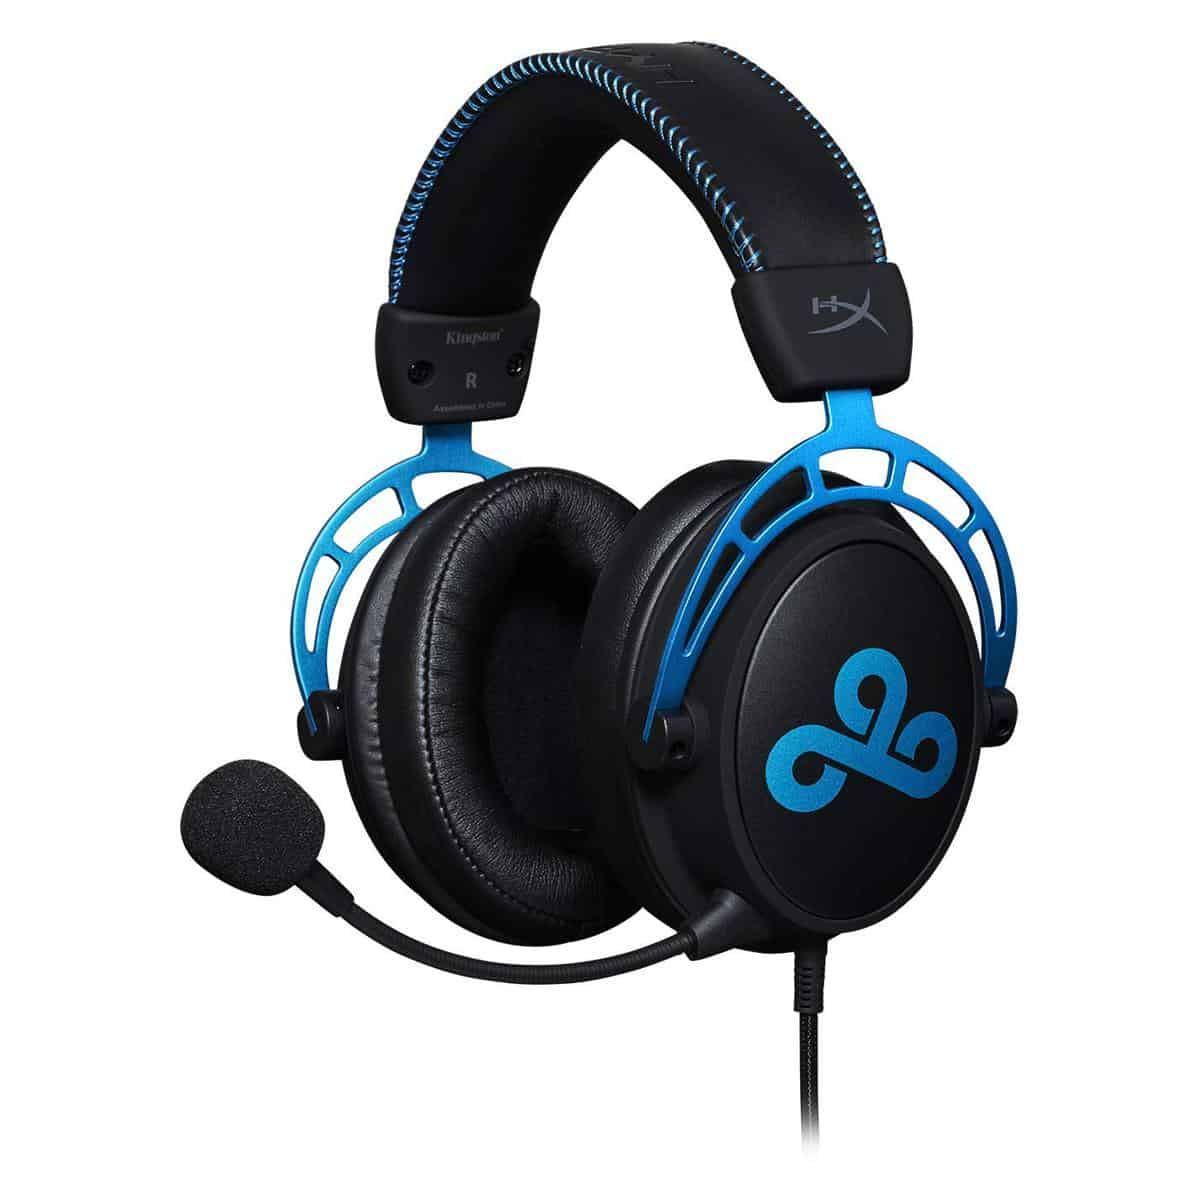 Overall Best Gaming Headset